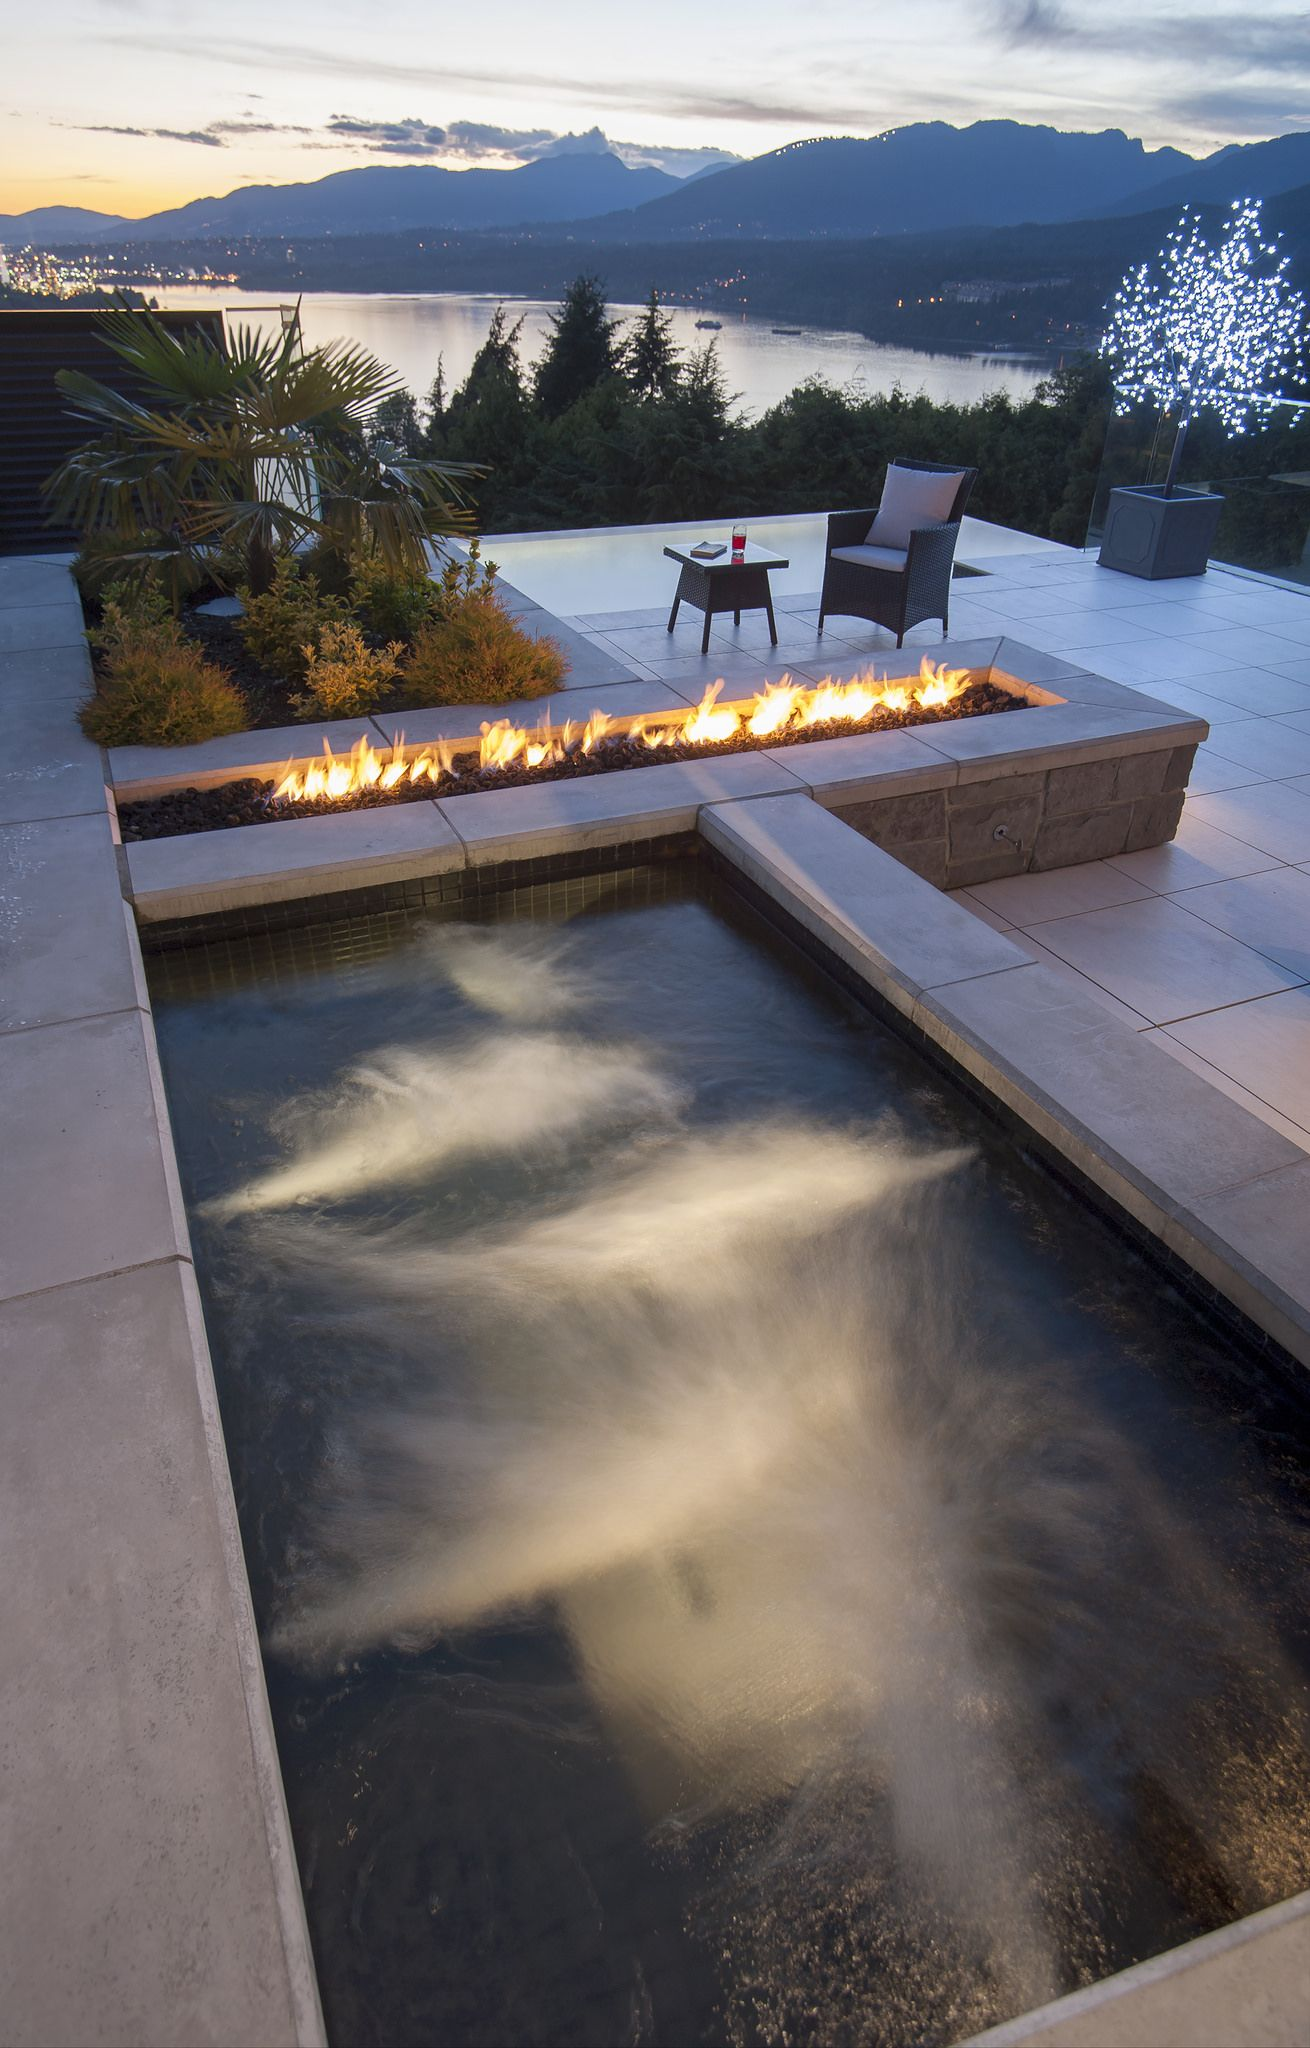 Whirlpool Outdoor Swim Spa Alka Pool Cooler Weather Is The Perfect Excuse To Cozy Up